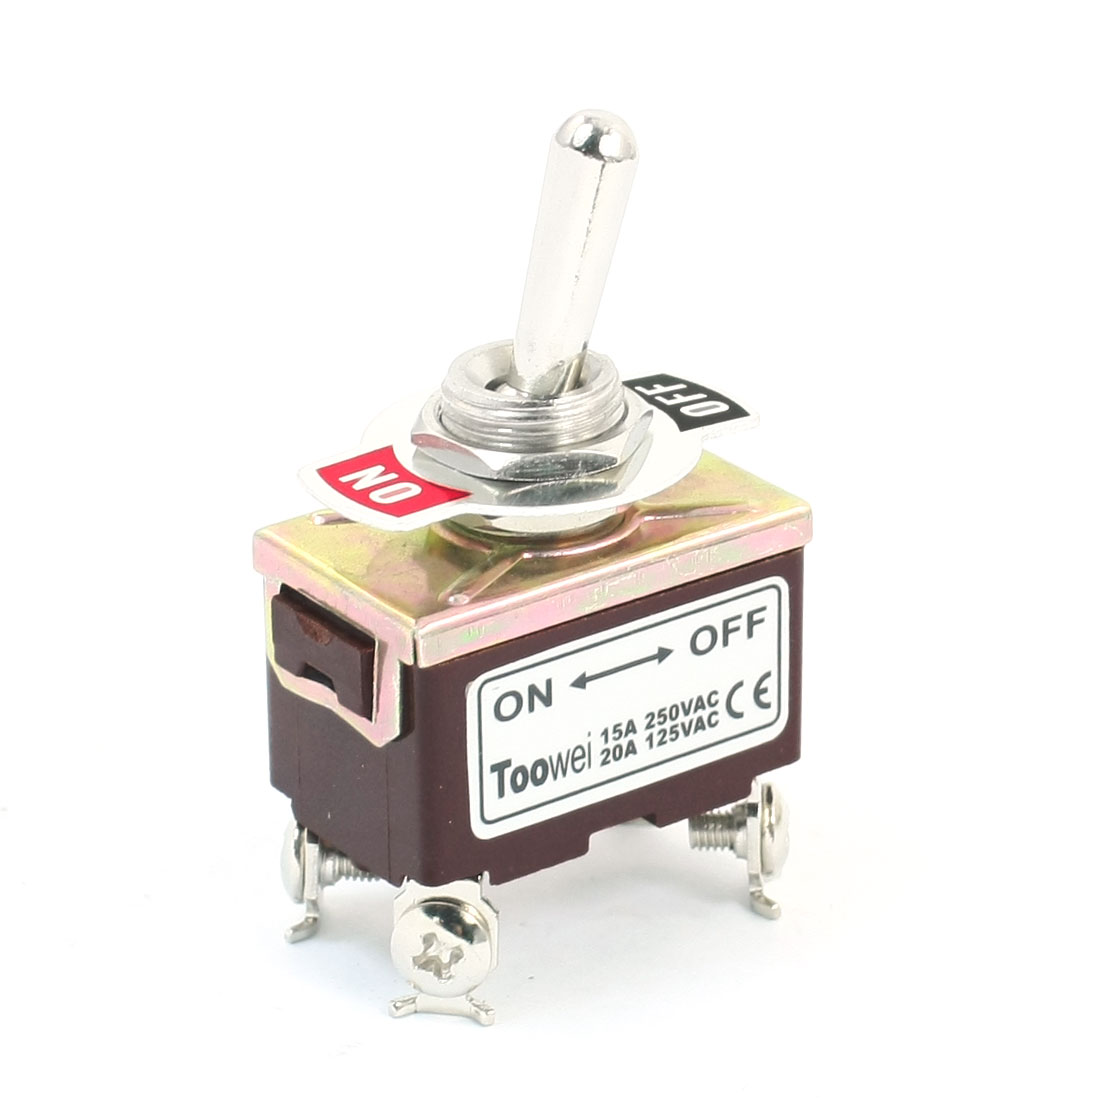 12mm Panel Mounted DPST ON/OFF Latching Toggle Switch AC 250V 15A T702AW